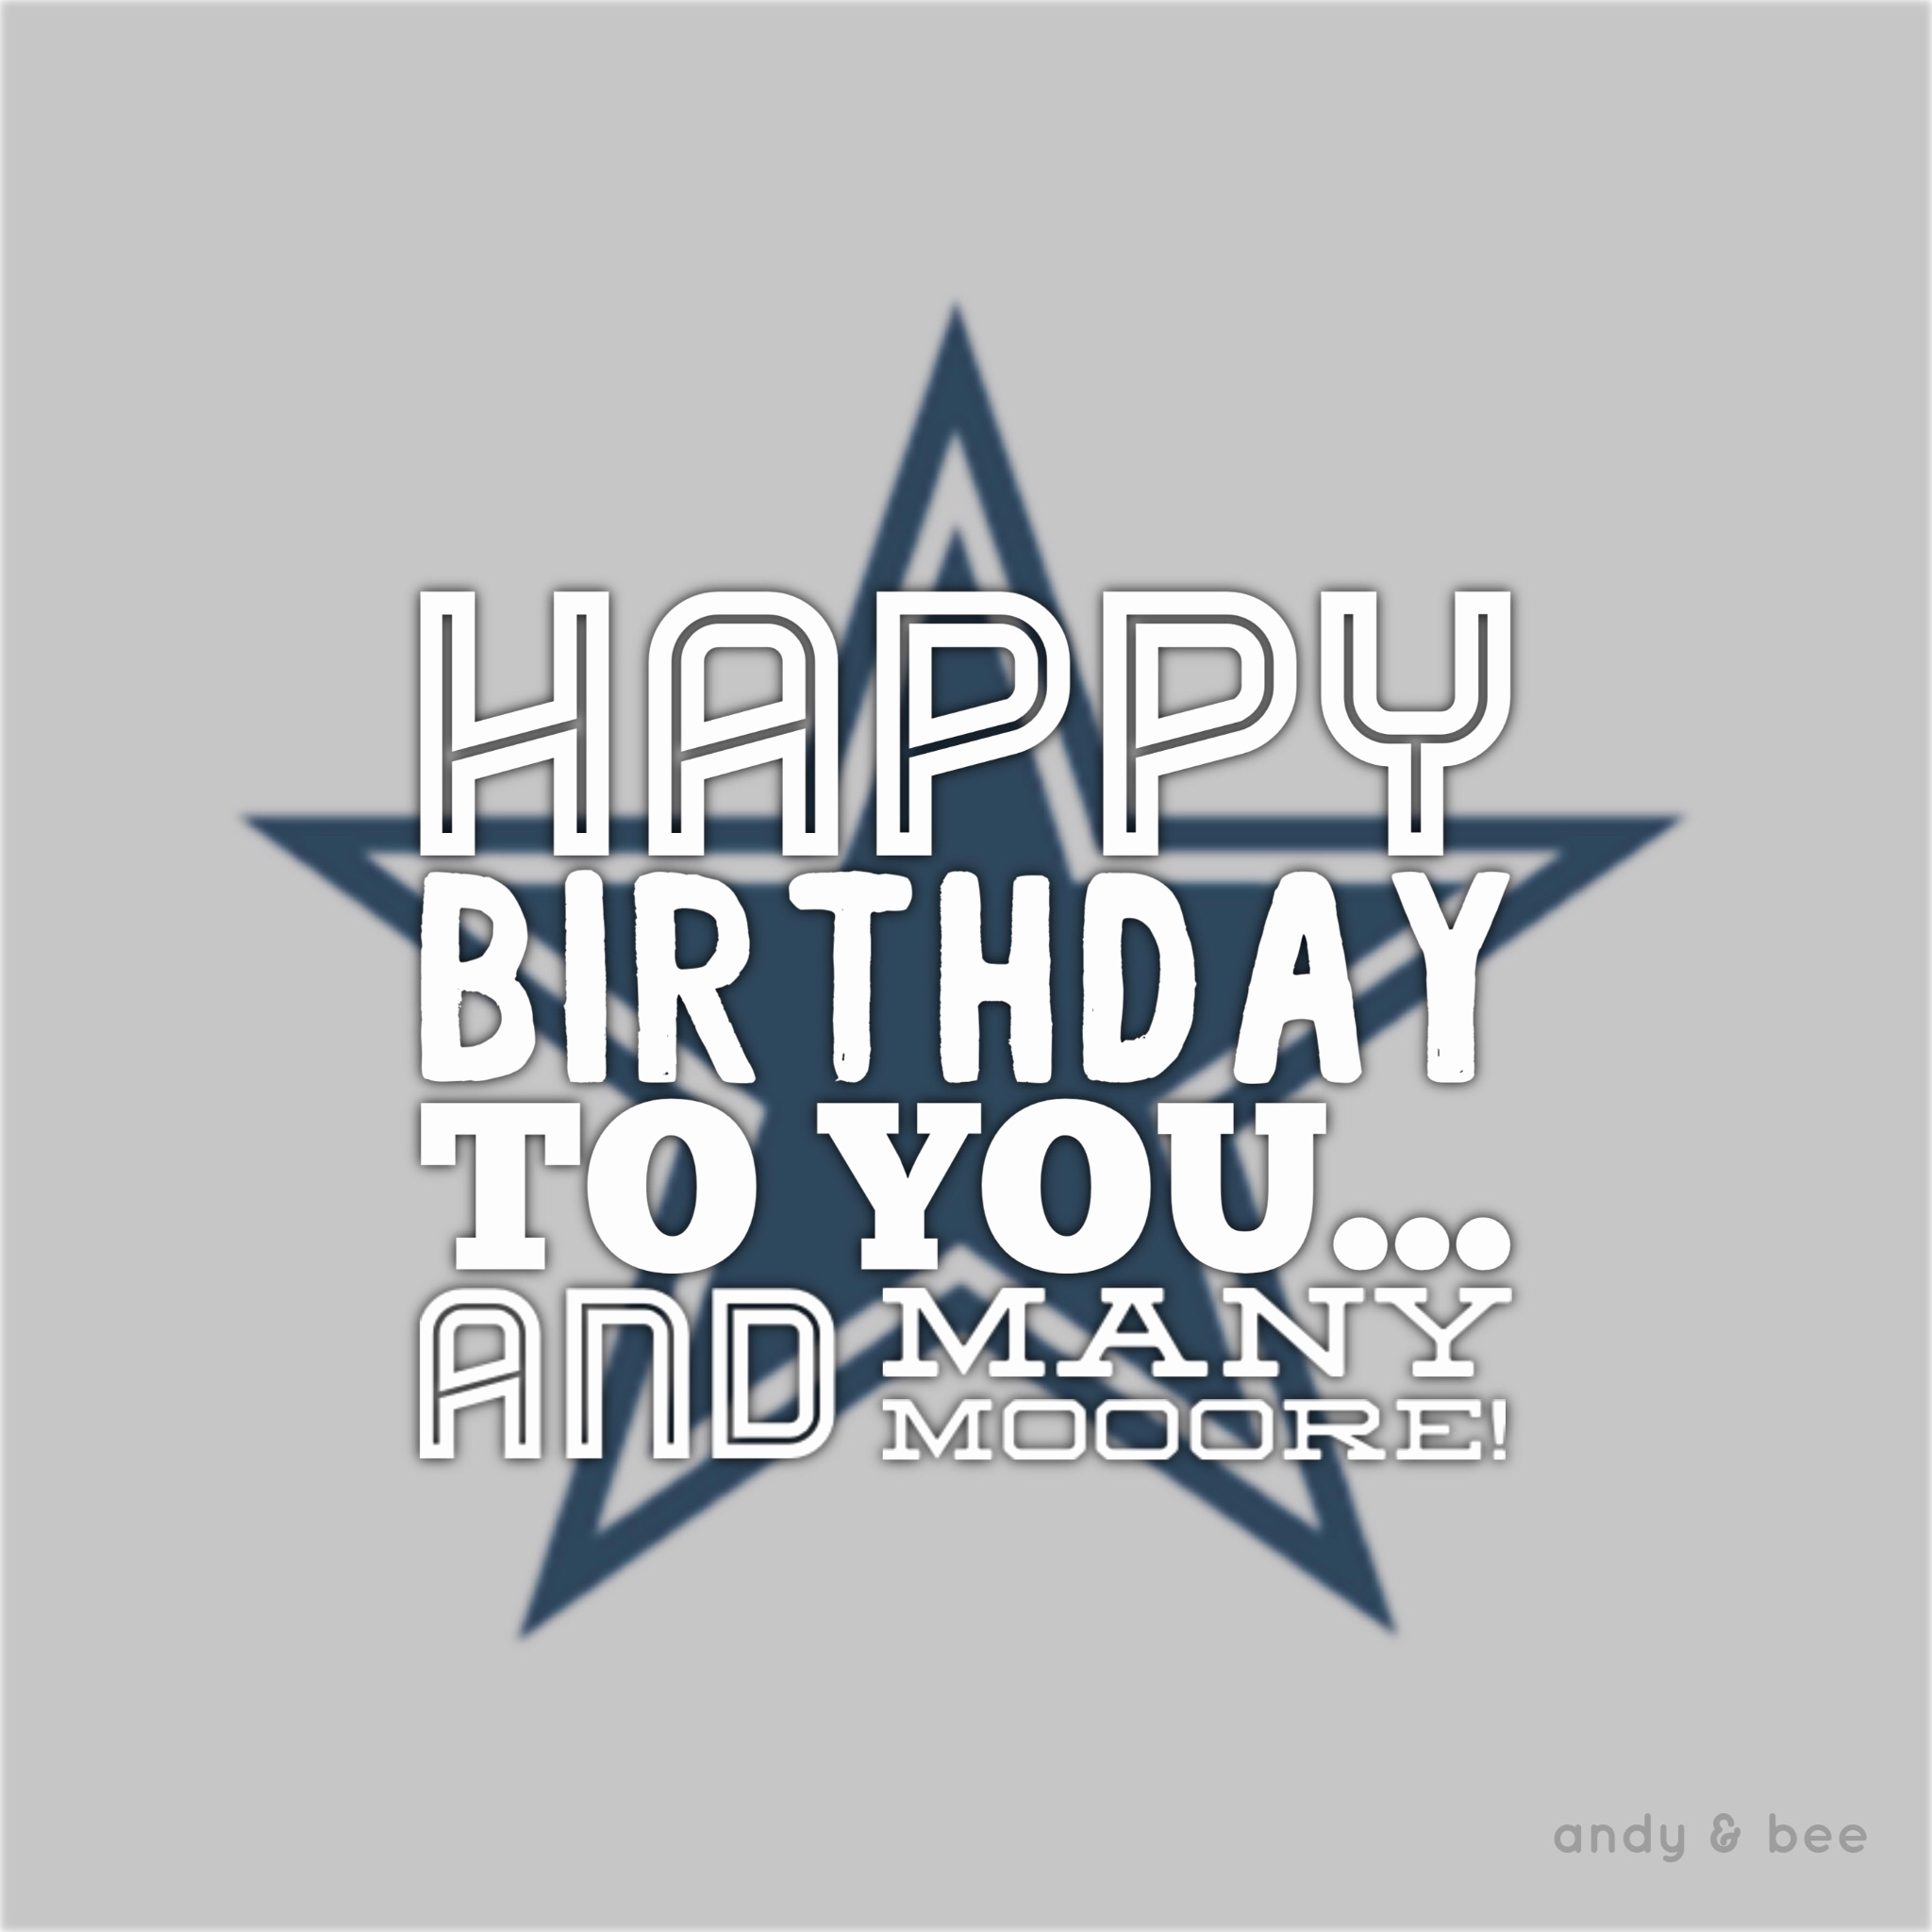 happy birthday cowboys fan ; dallas-cowboys-birthday-cards-lovely-dallas-cowboys-birthday-card-alas-i-left-the-watermark-of-dallas-cowboys-birthday-cards